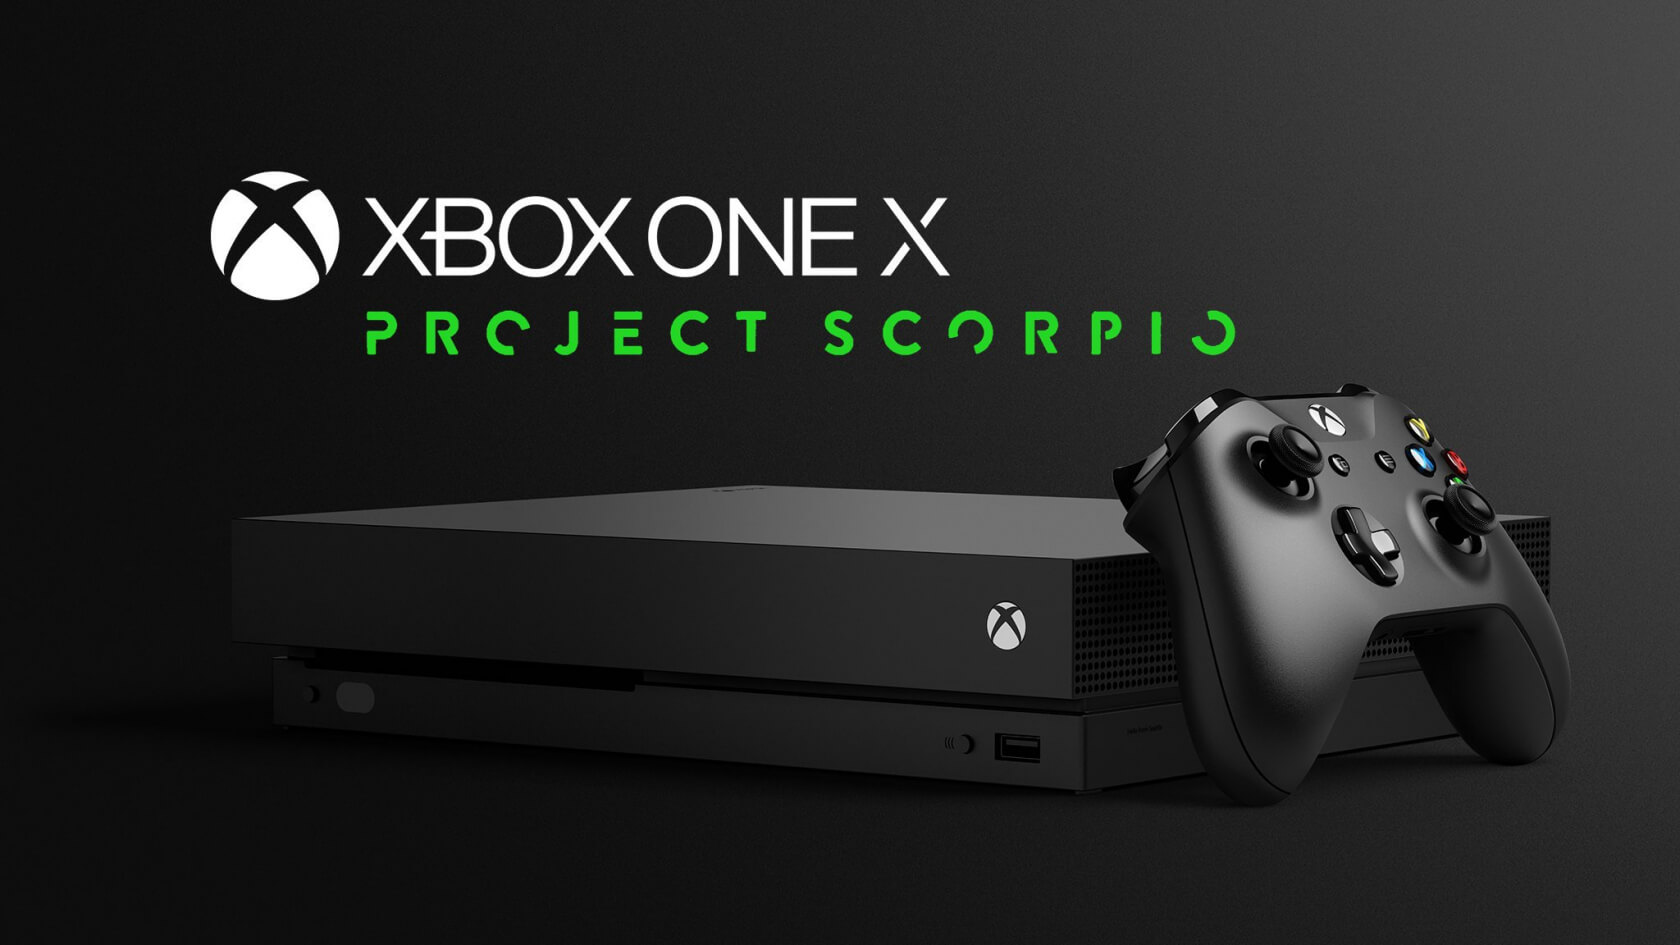 Xbox One X may be seeing a Day One special edition branded with the Project Scorpio logo